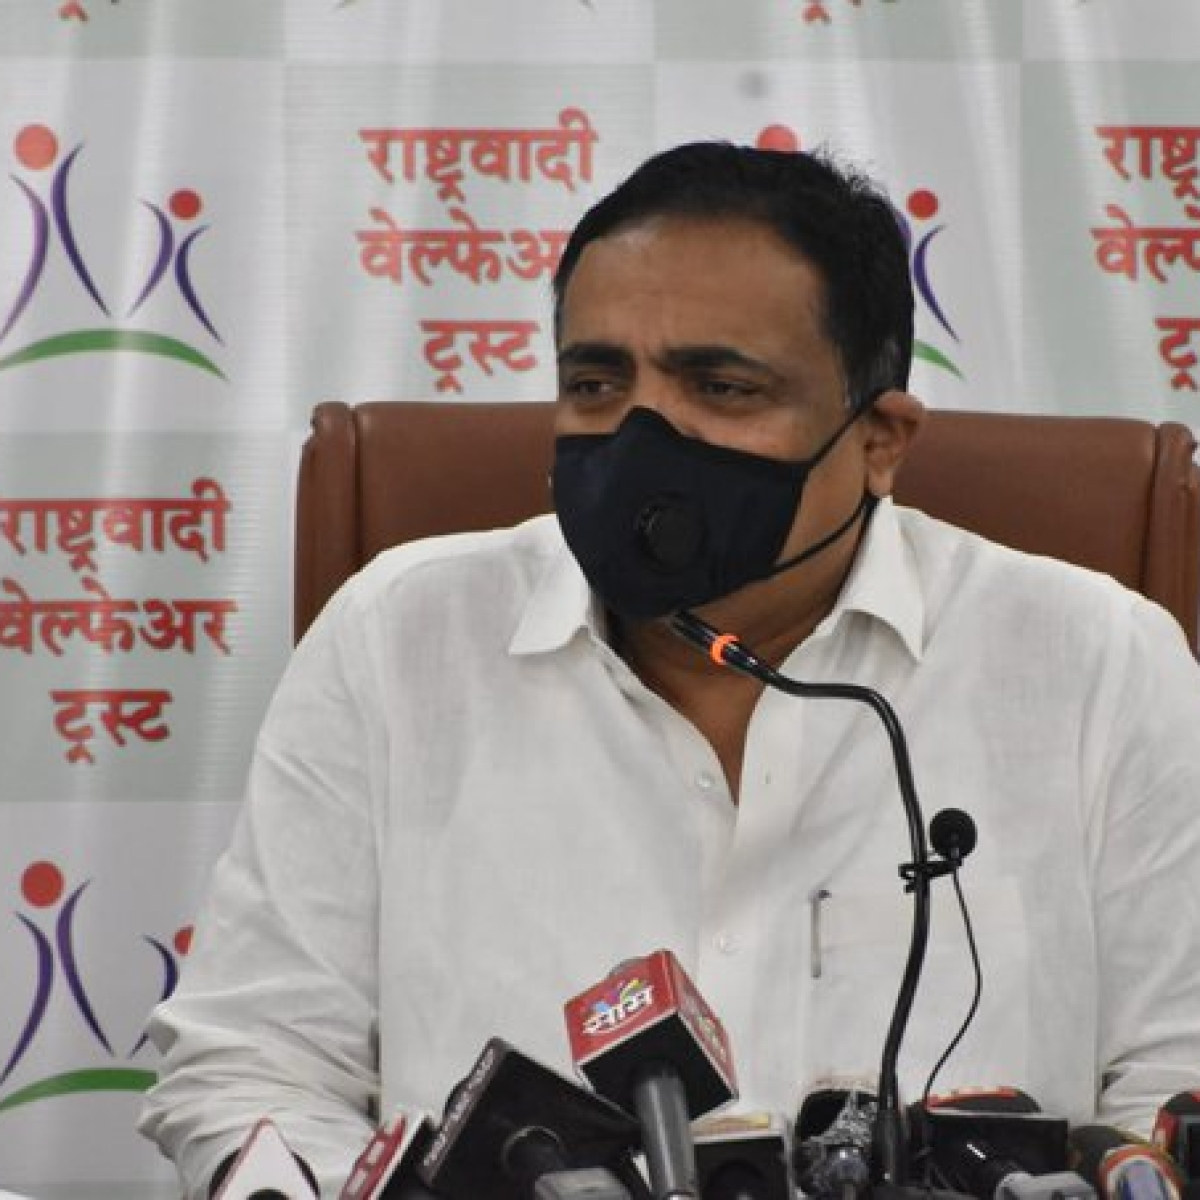 Actor Sharad Ponkshe not related to NCP: Minister Jayant Patil